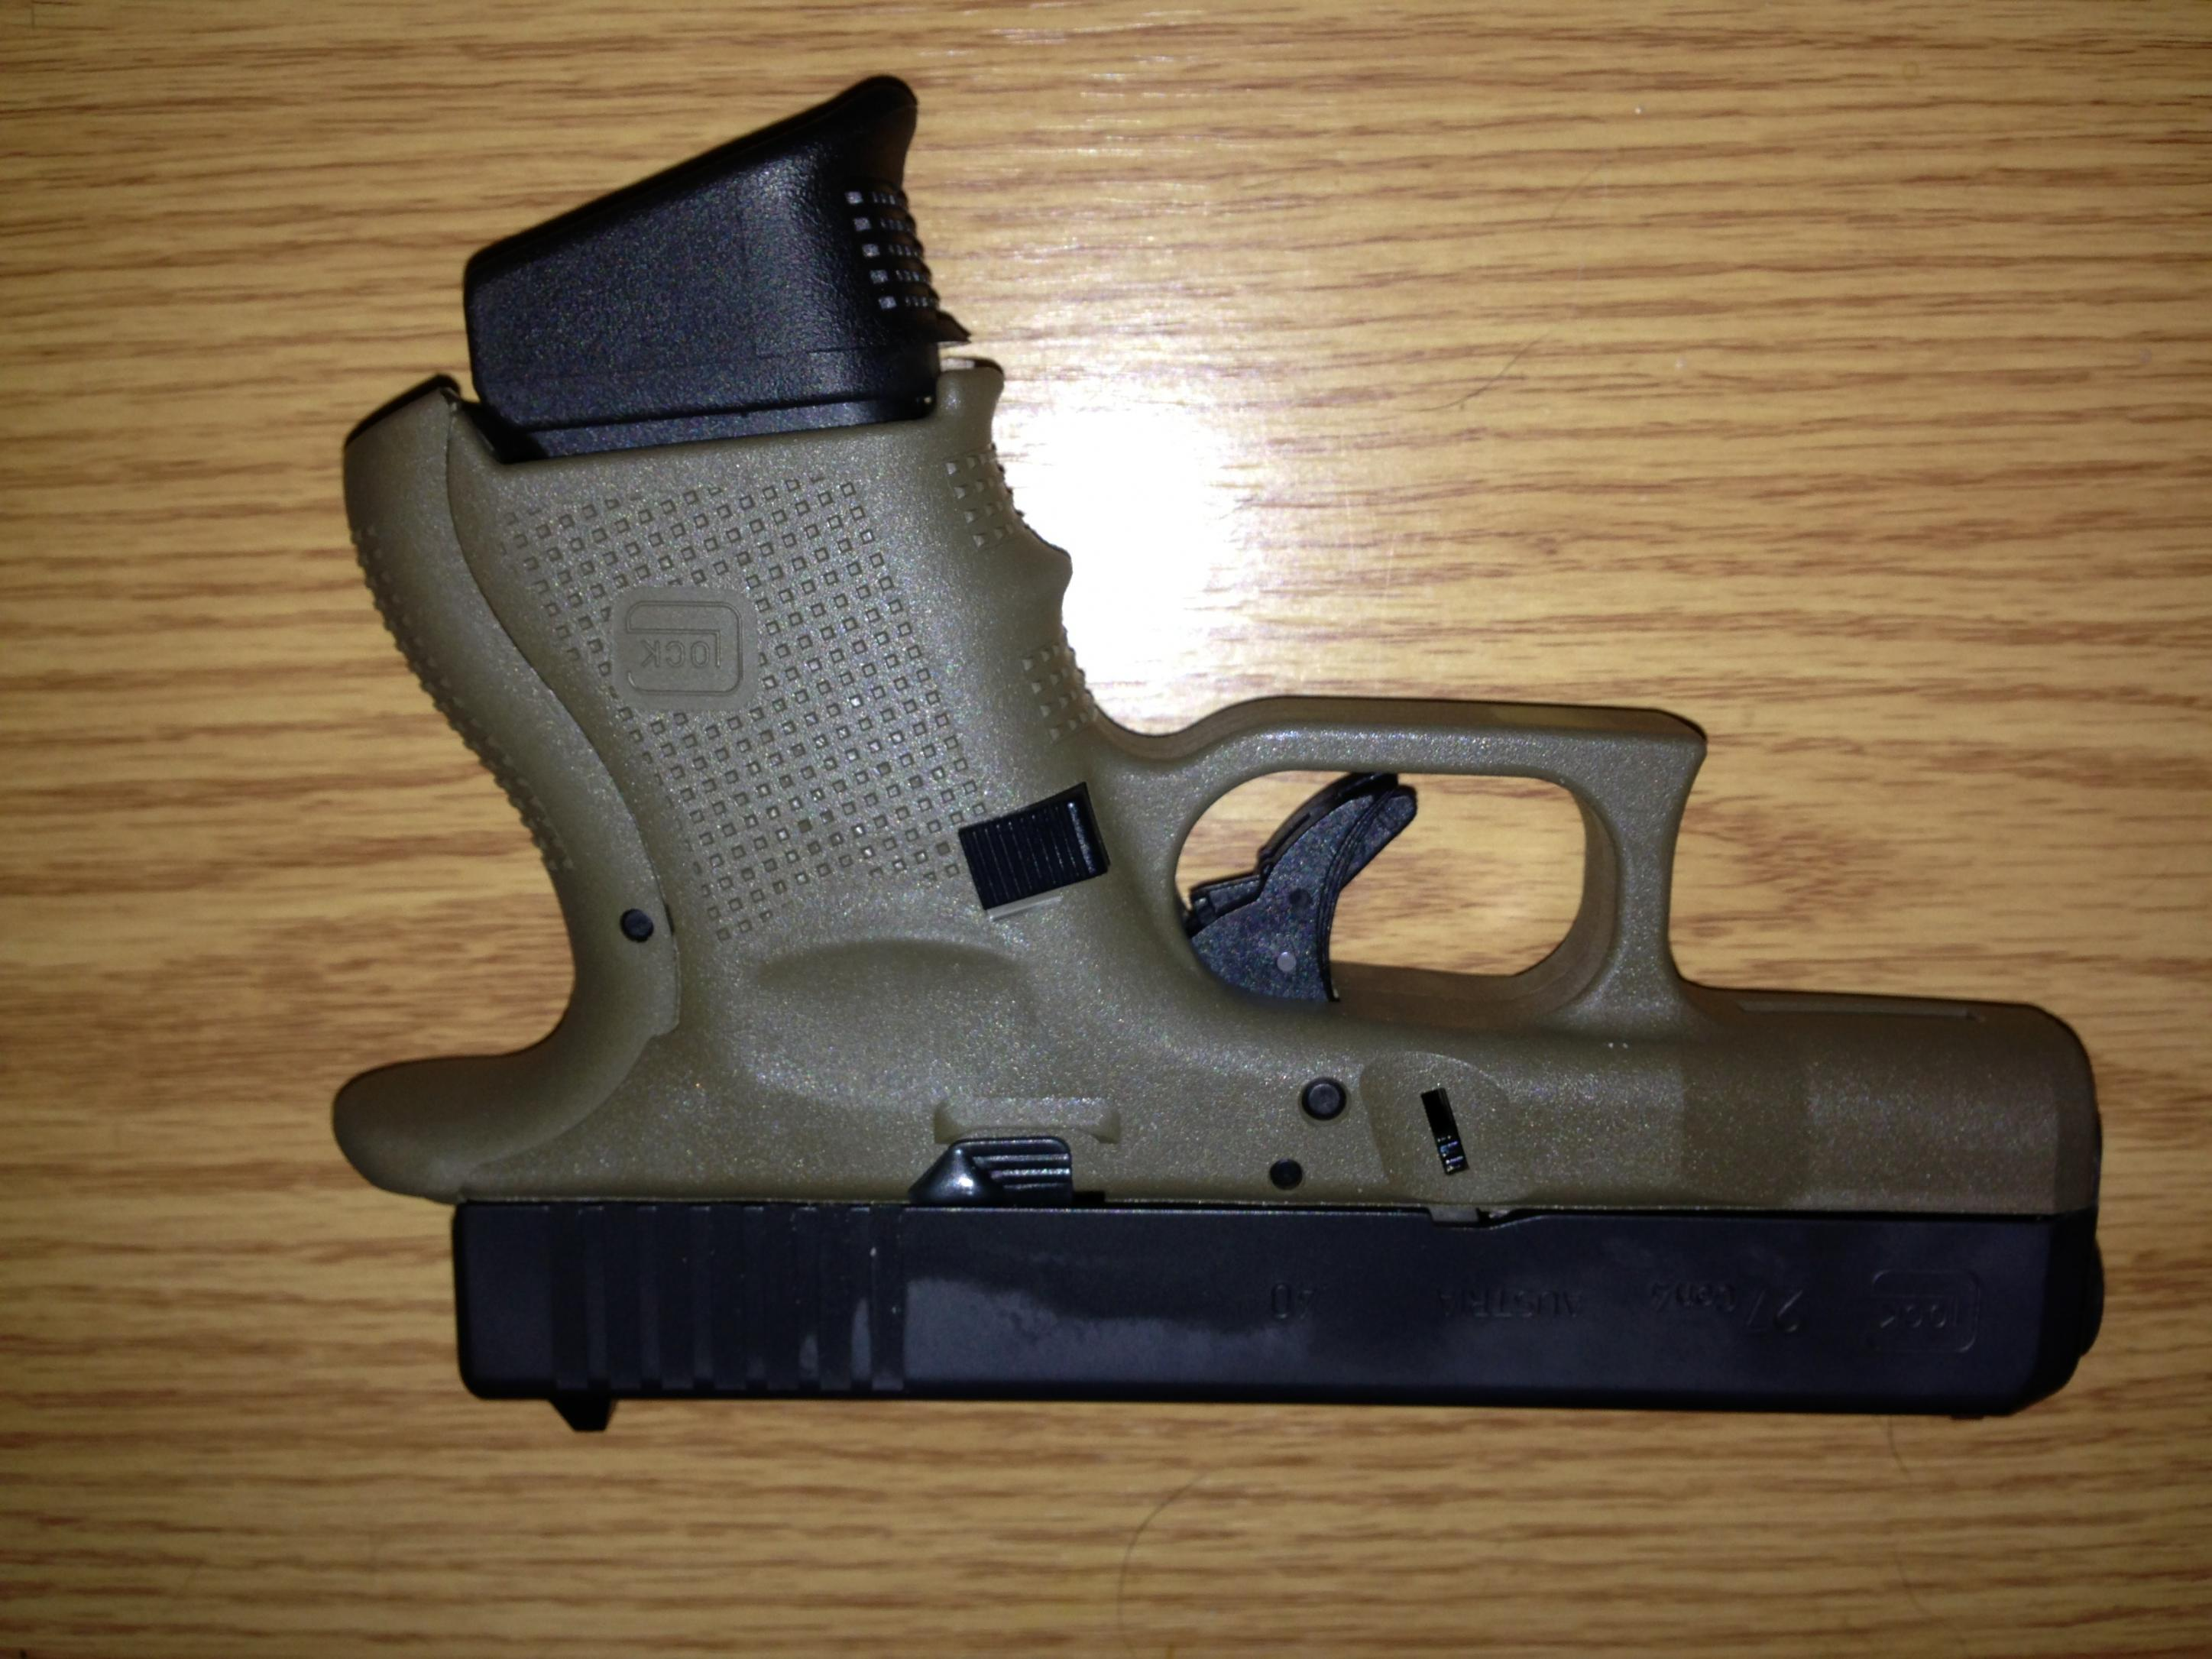 new conceal carry rig-img_1798-1-.jpg